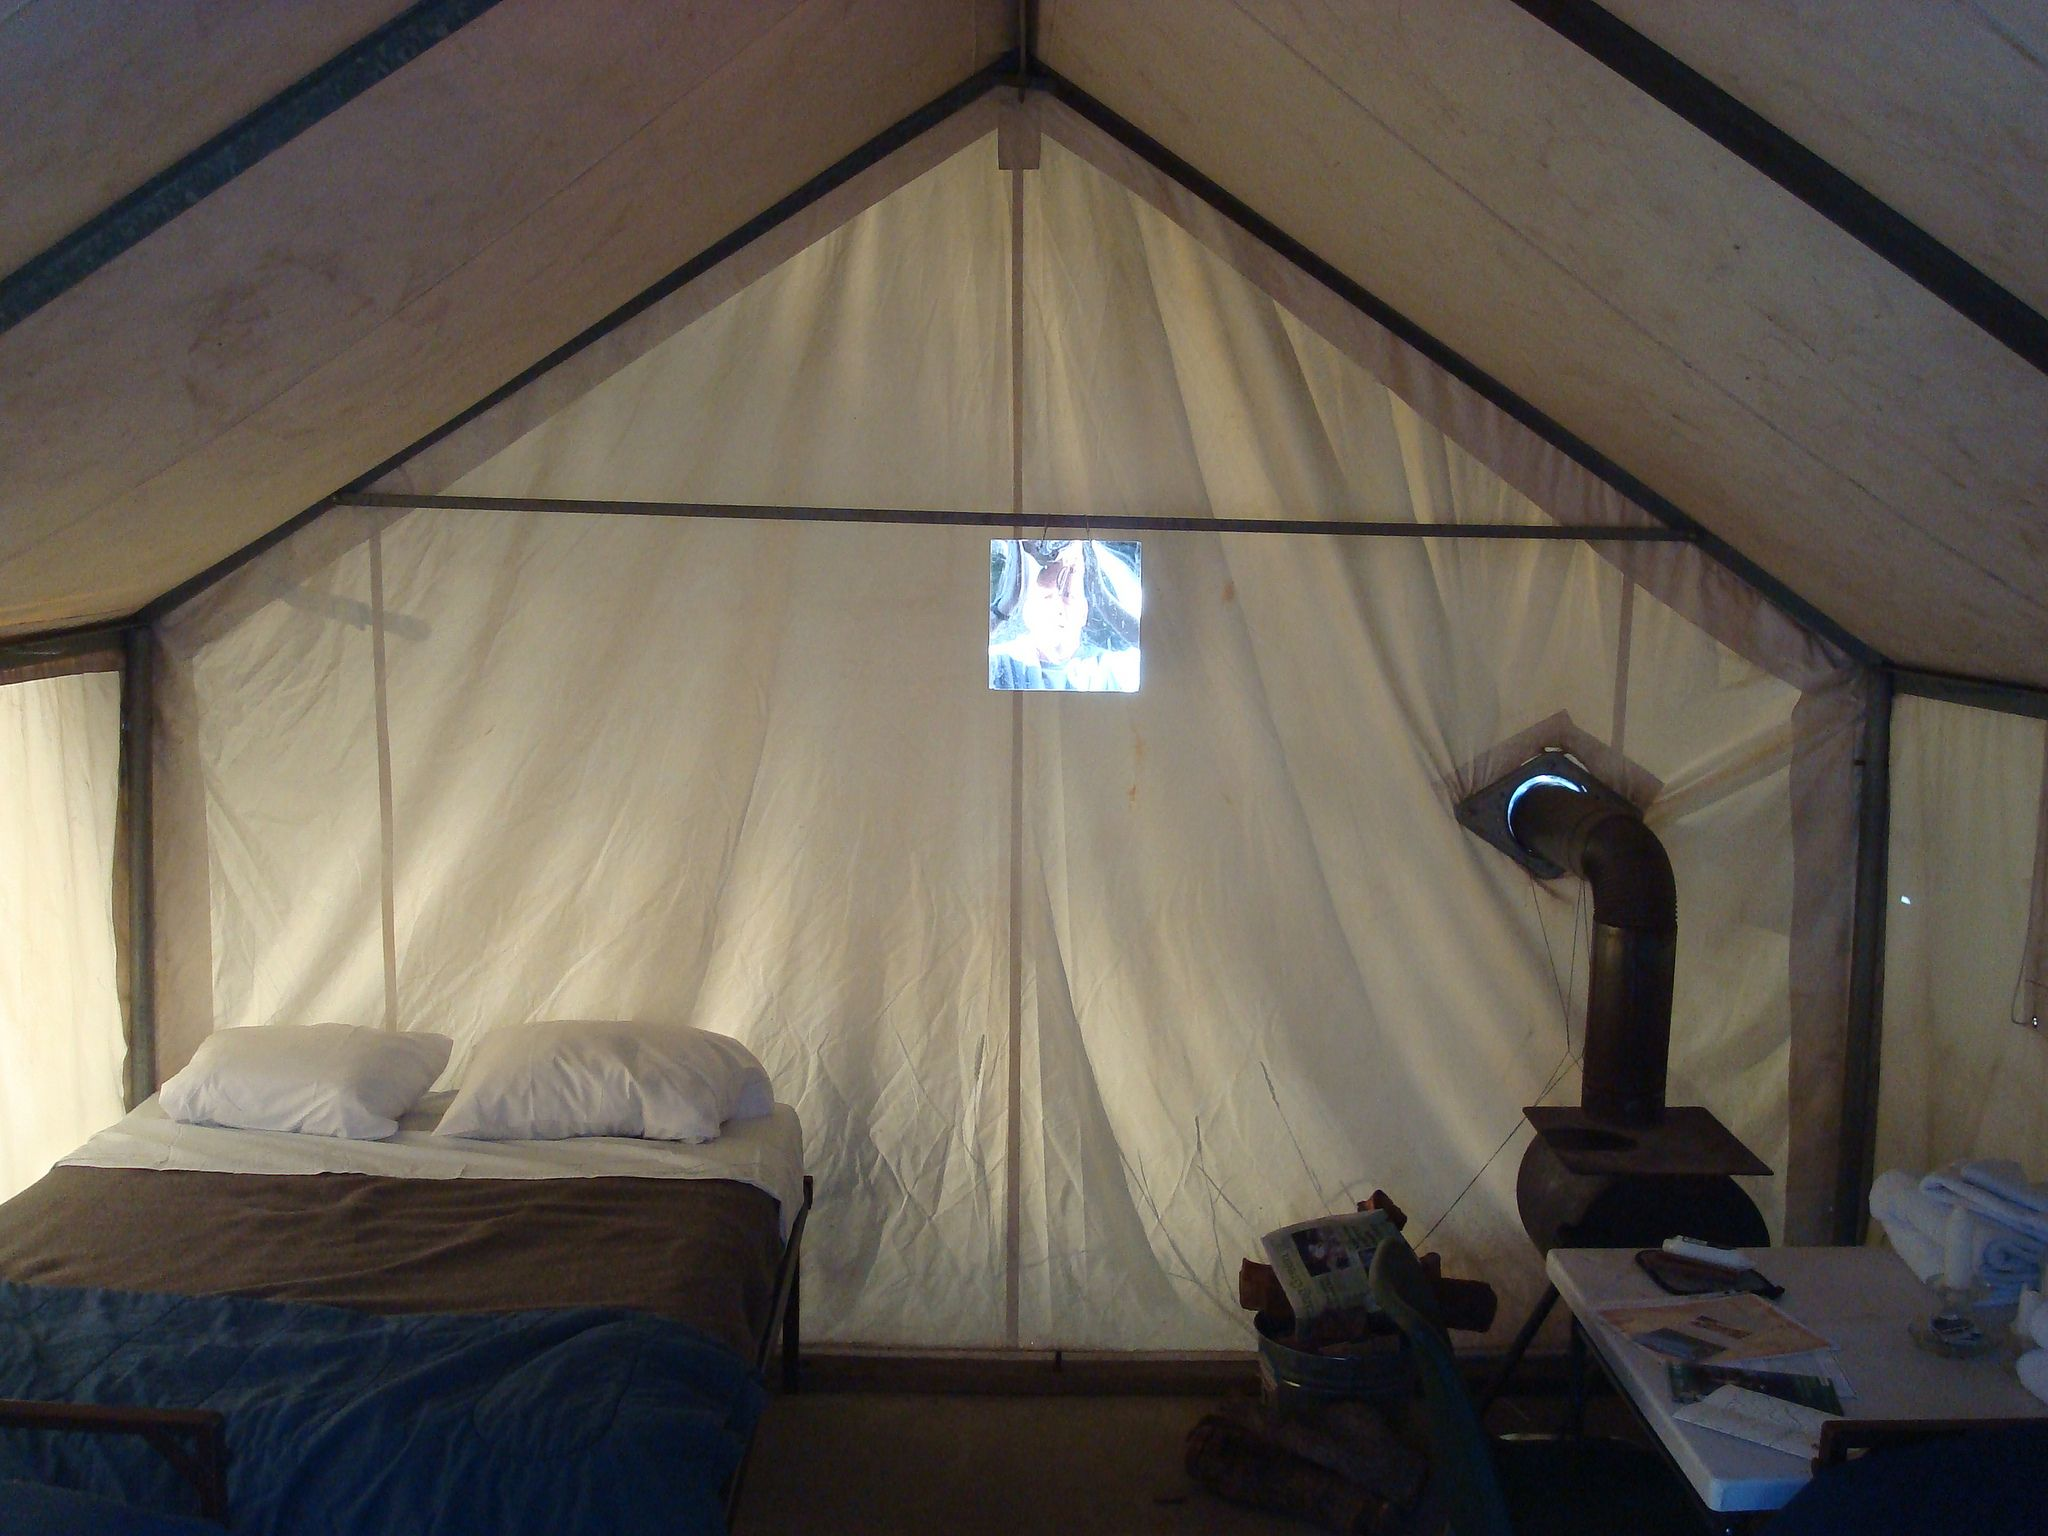 Tent Cabin at Tuolumne Meadows & https://flic.kr/p/cJAy7b | Tent Cabin at Tuolumne Meadows ...